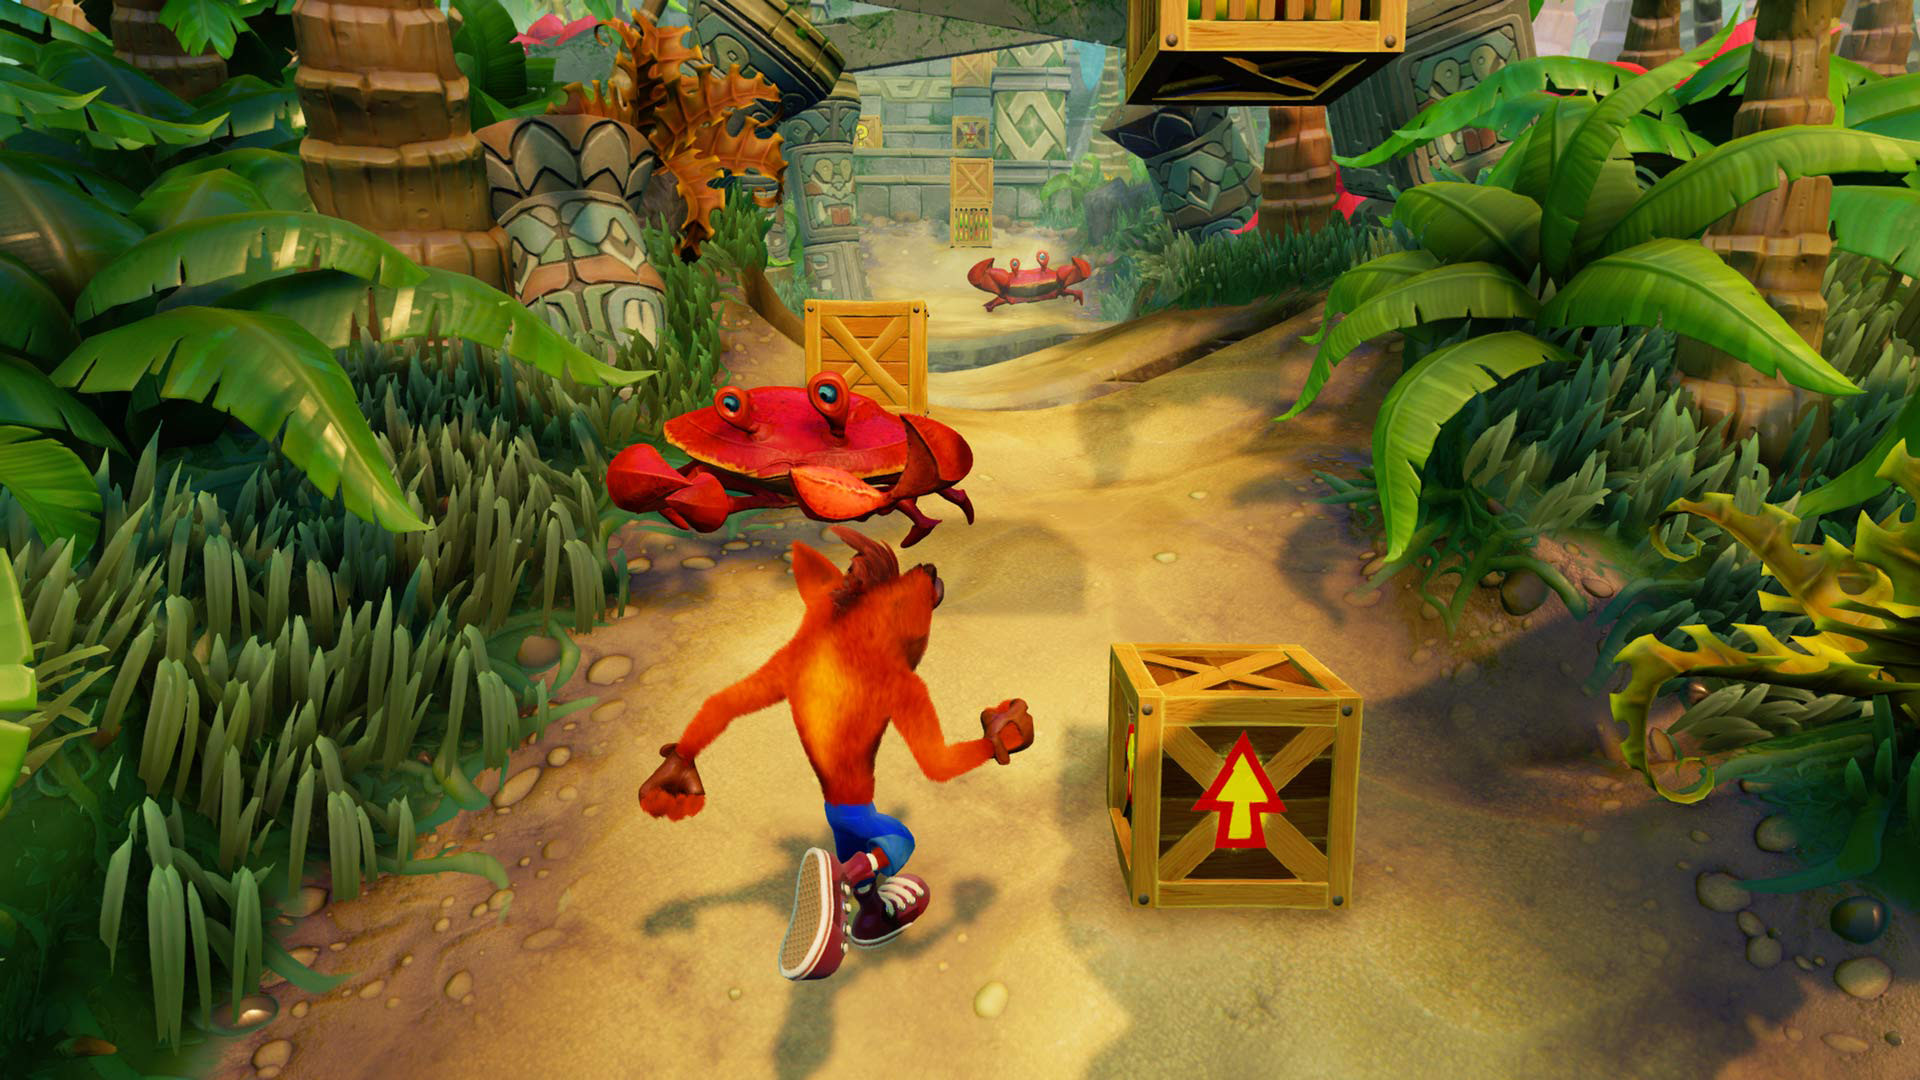 2707-crash-bandicoot-n-sane-trilogy-gallery-11_1